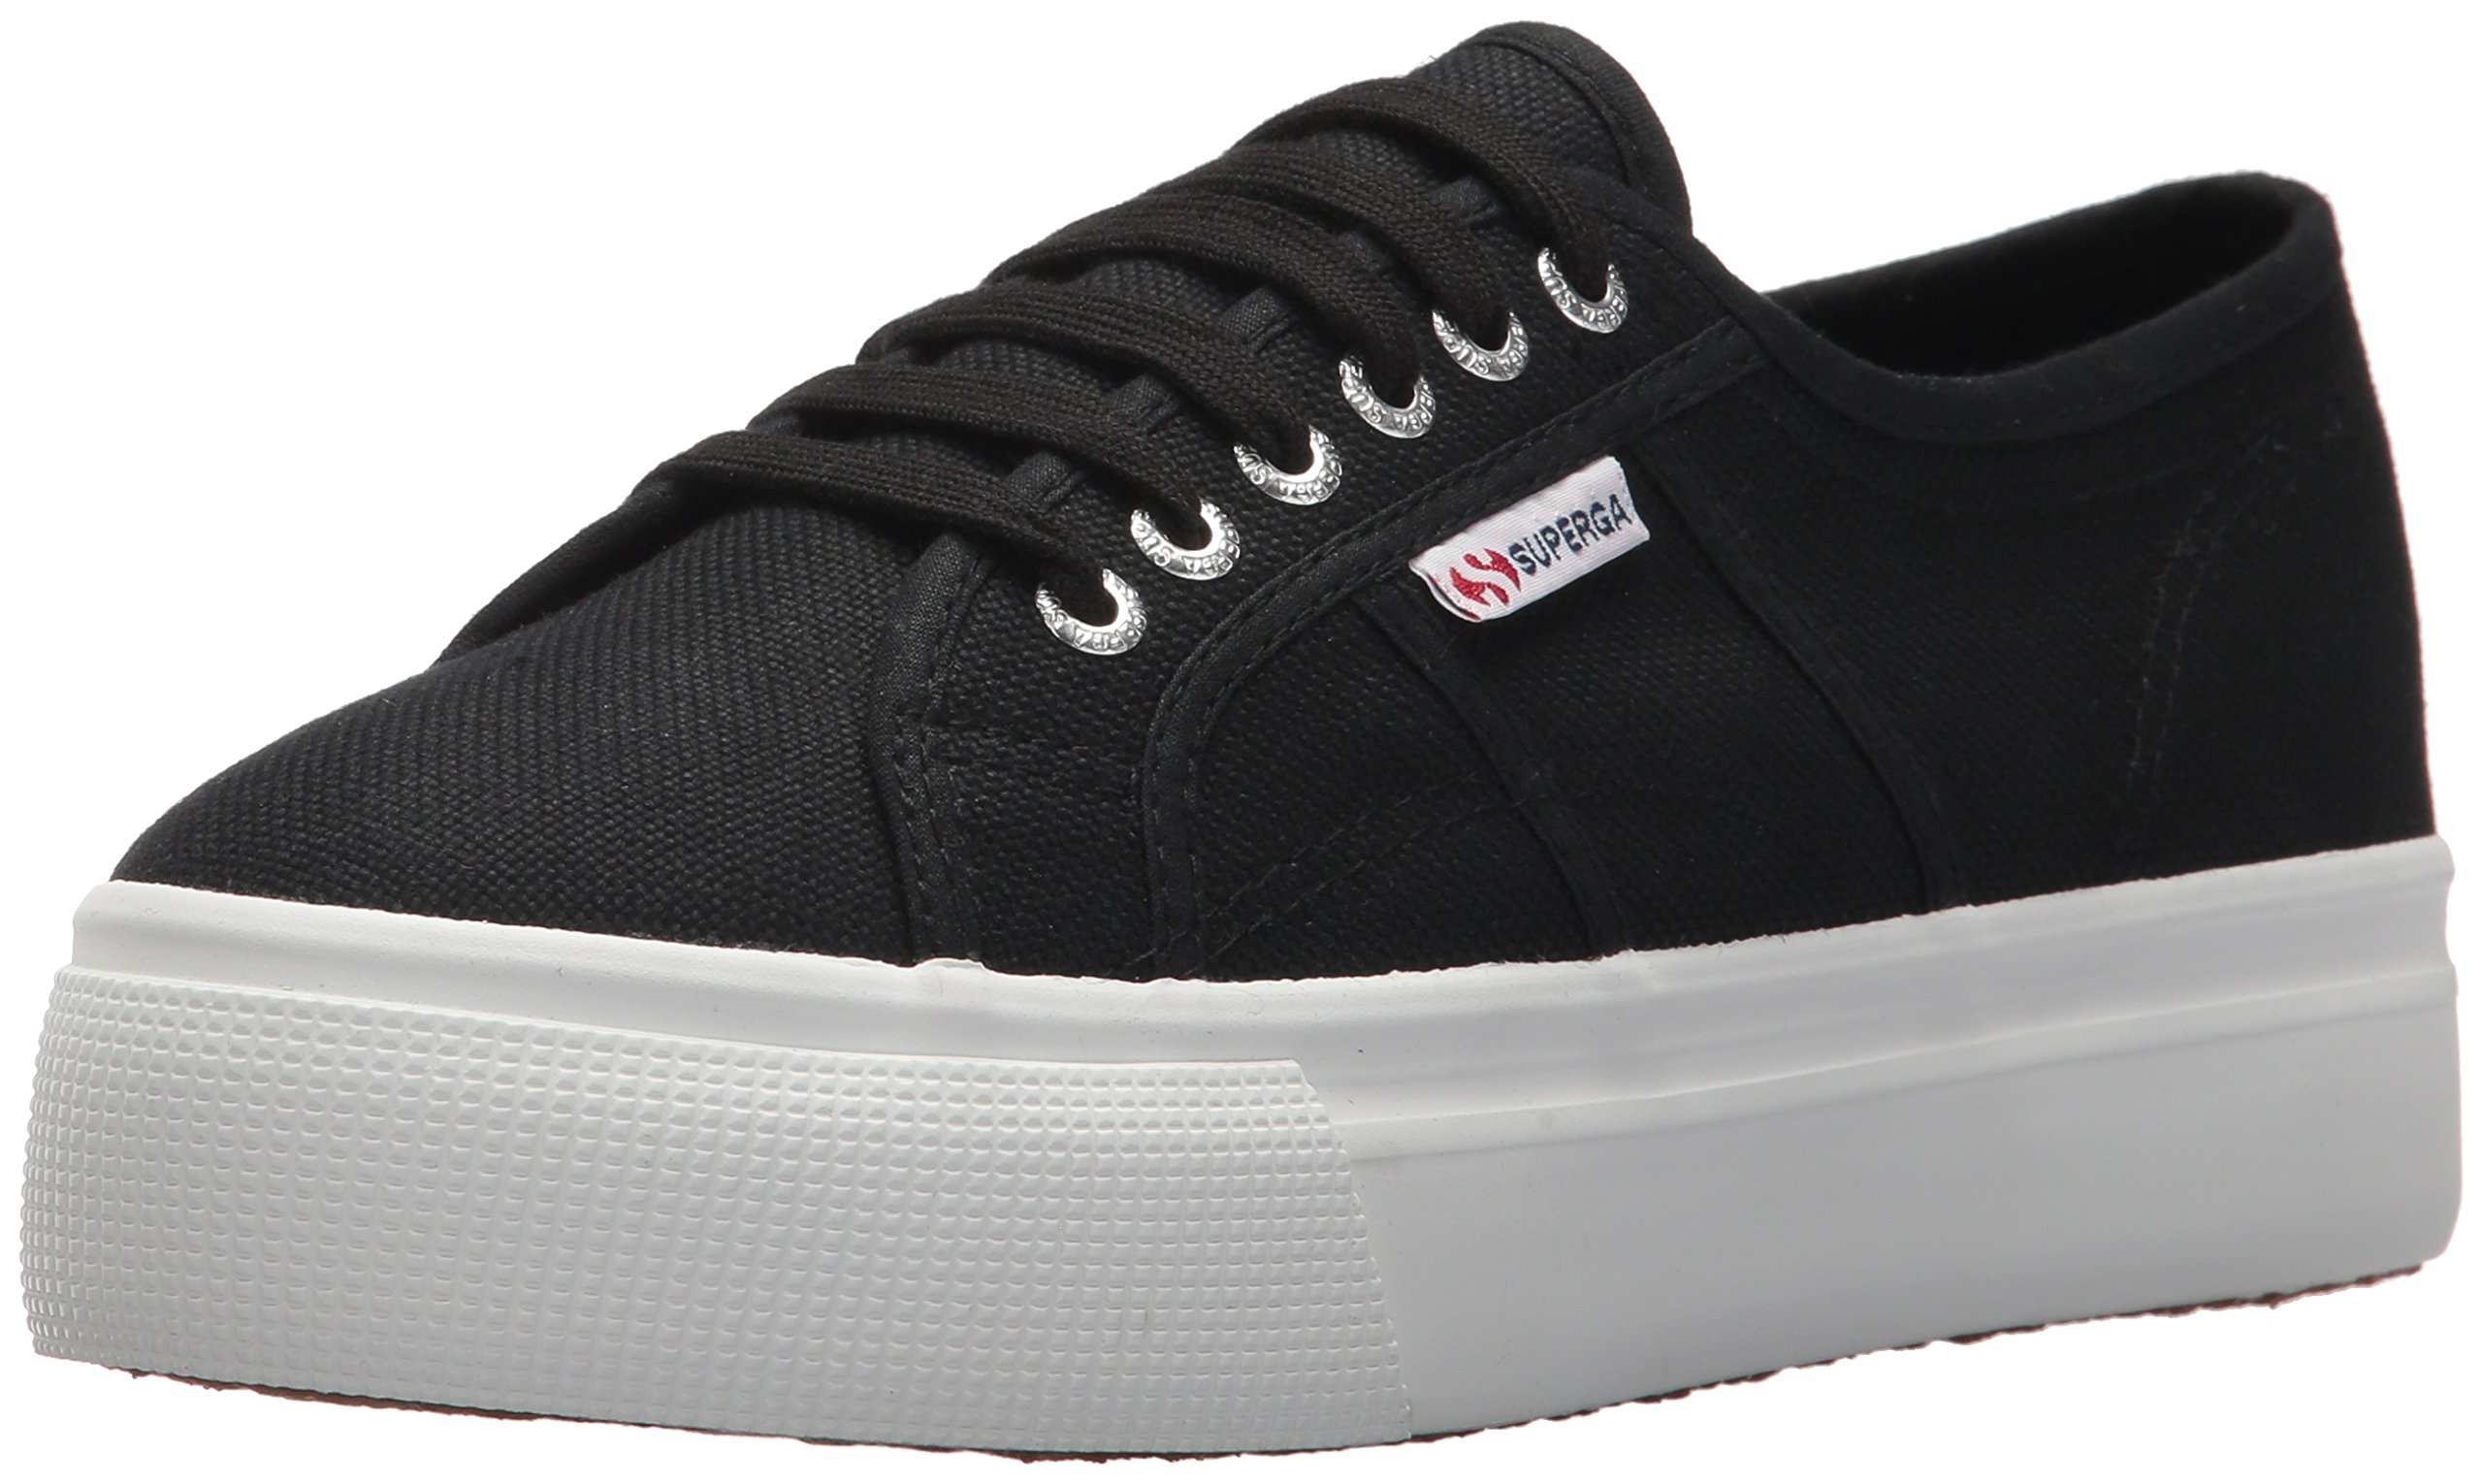 Superga Women's 2790 Platform Sneaker, Black/White, 35 M EU (5 US)